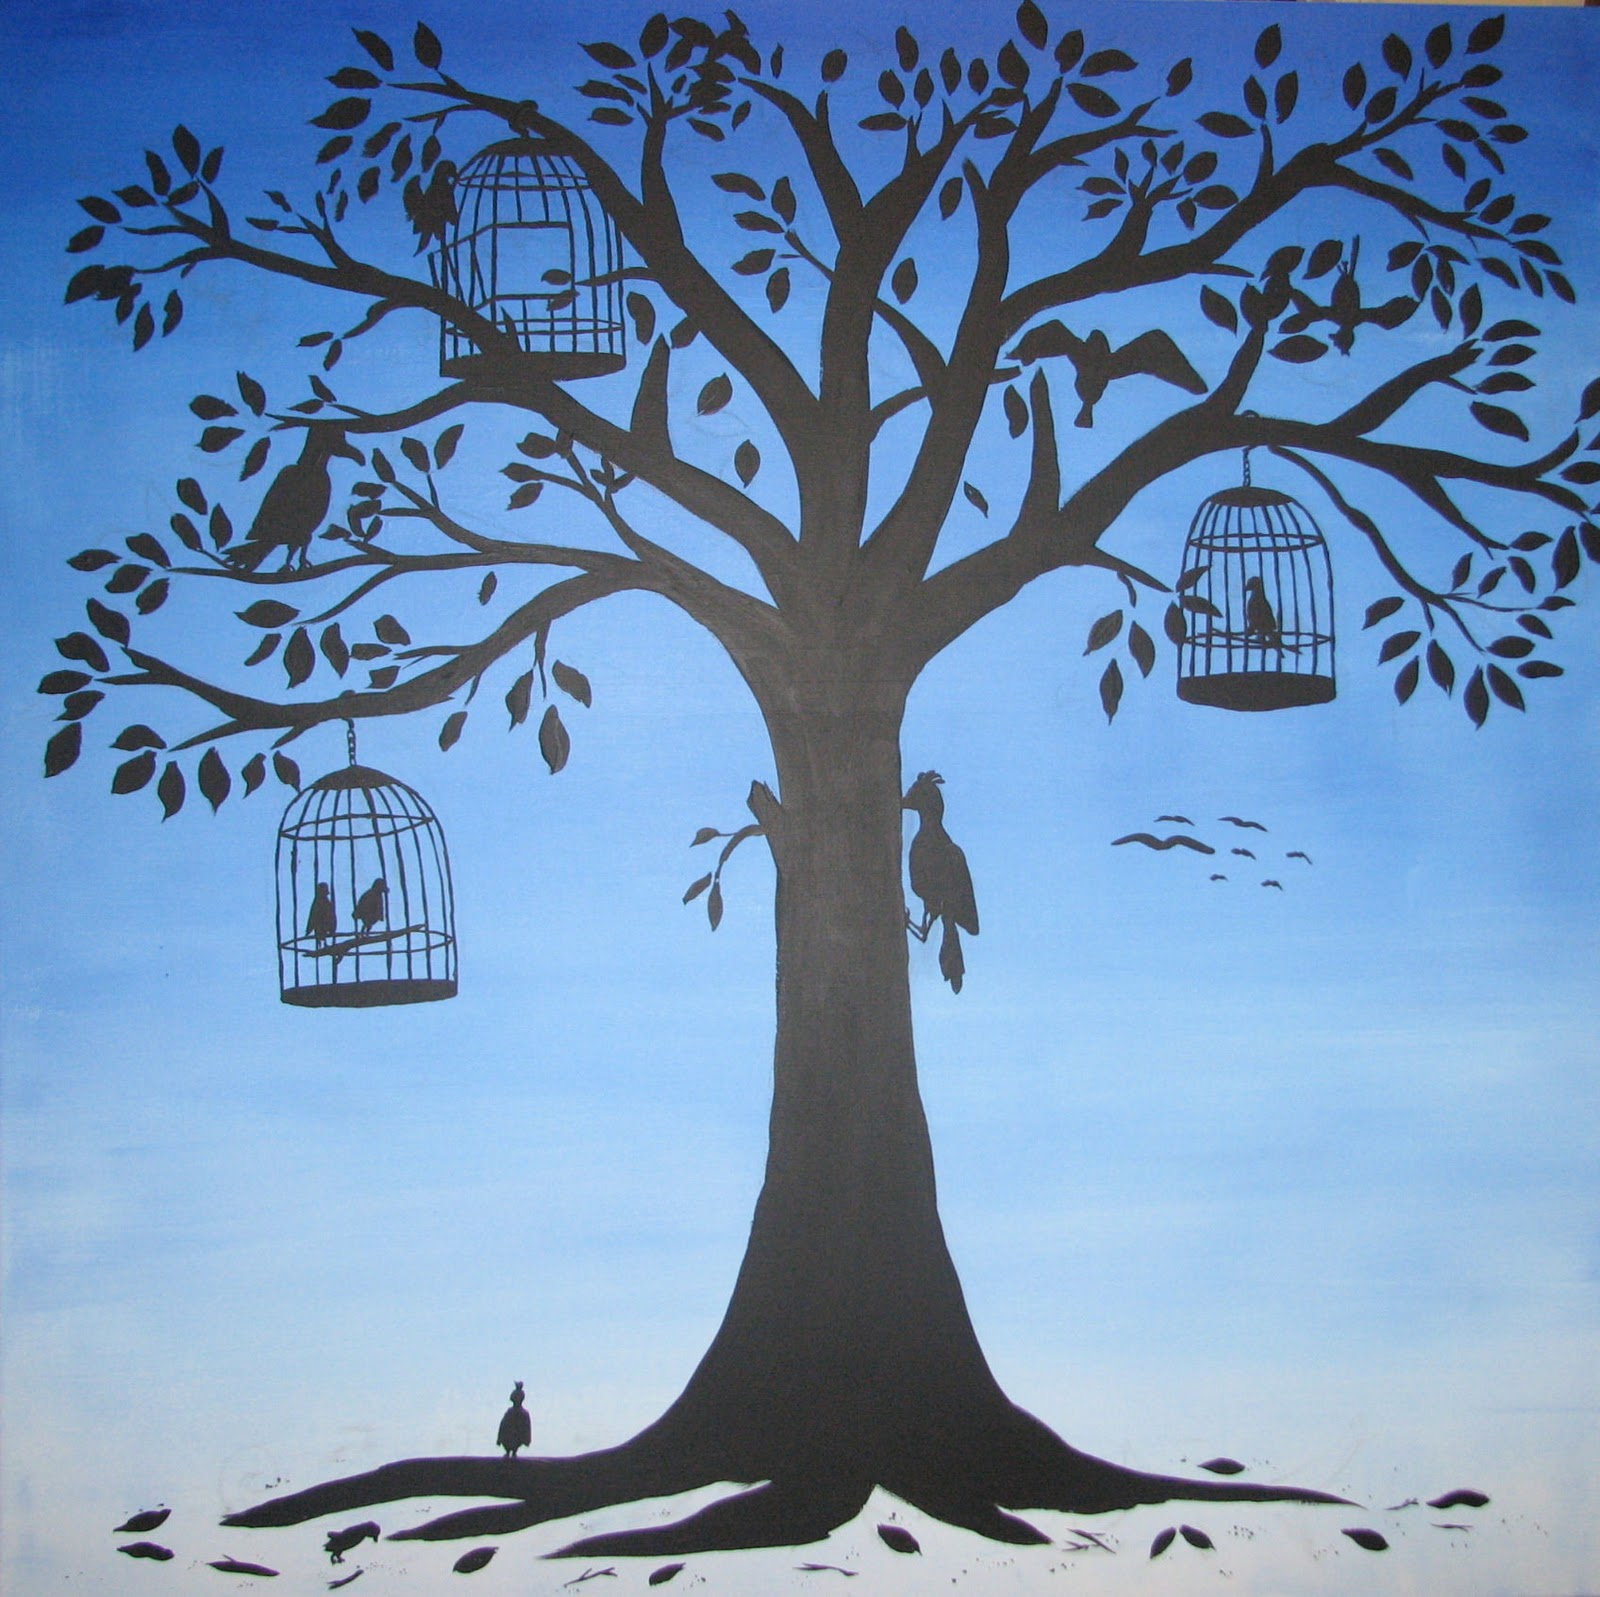 Arty Crafty Studio Whimsical Painting Bird Tree